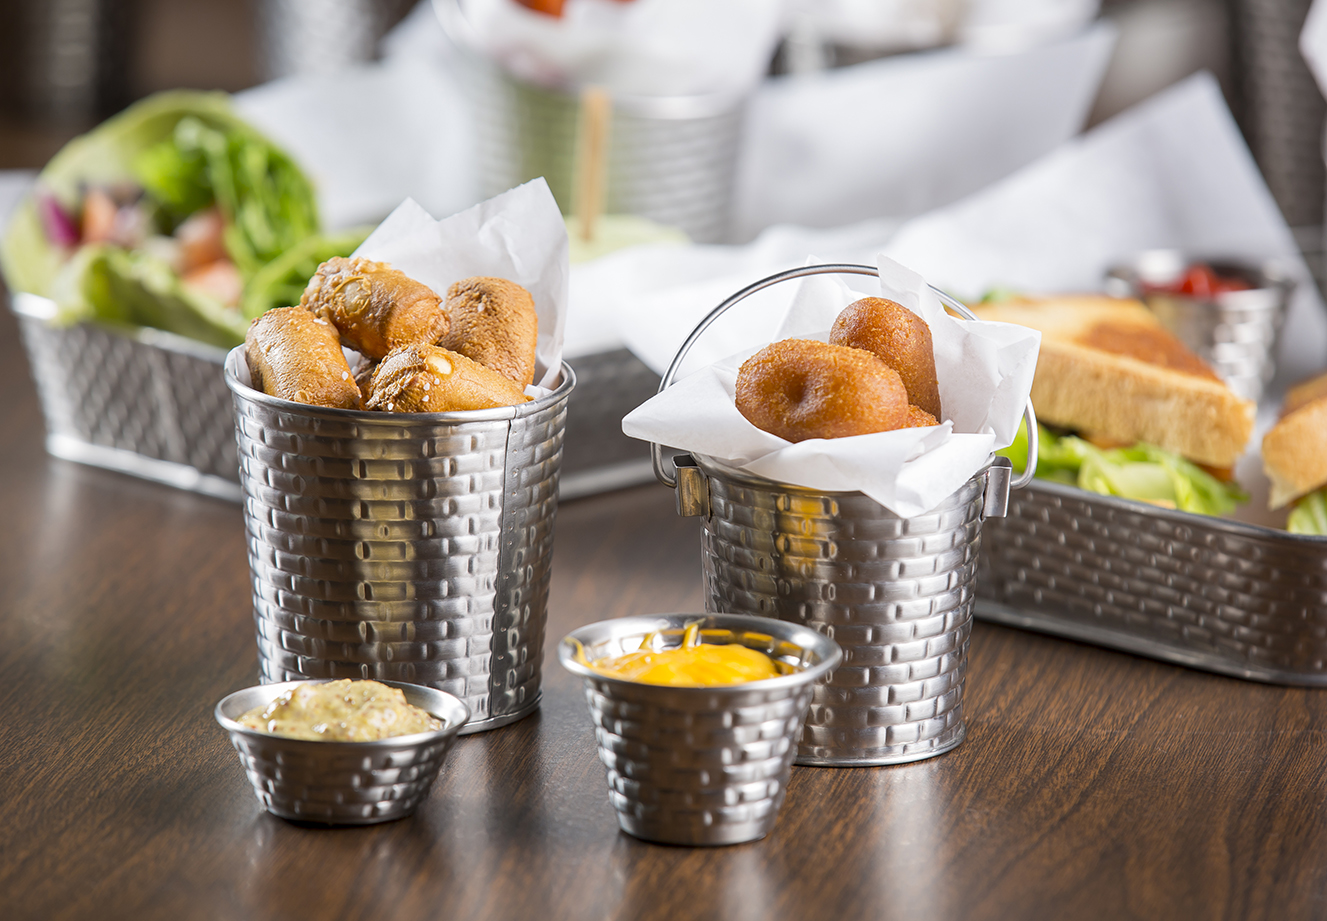 stainless steel cups and ramekins